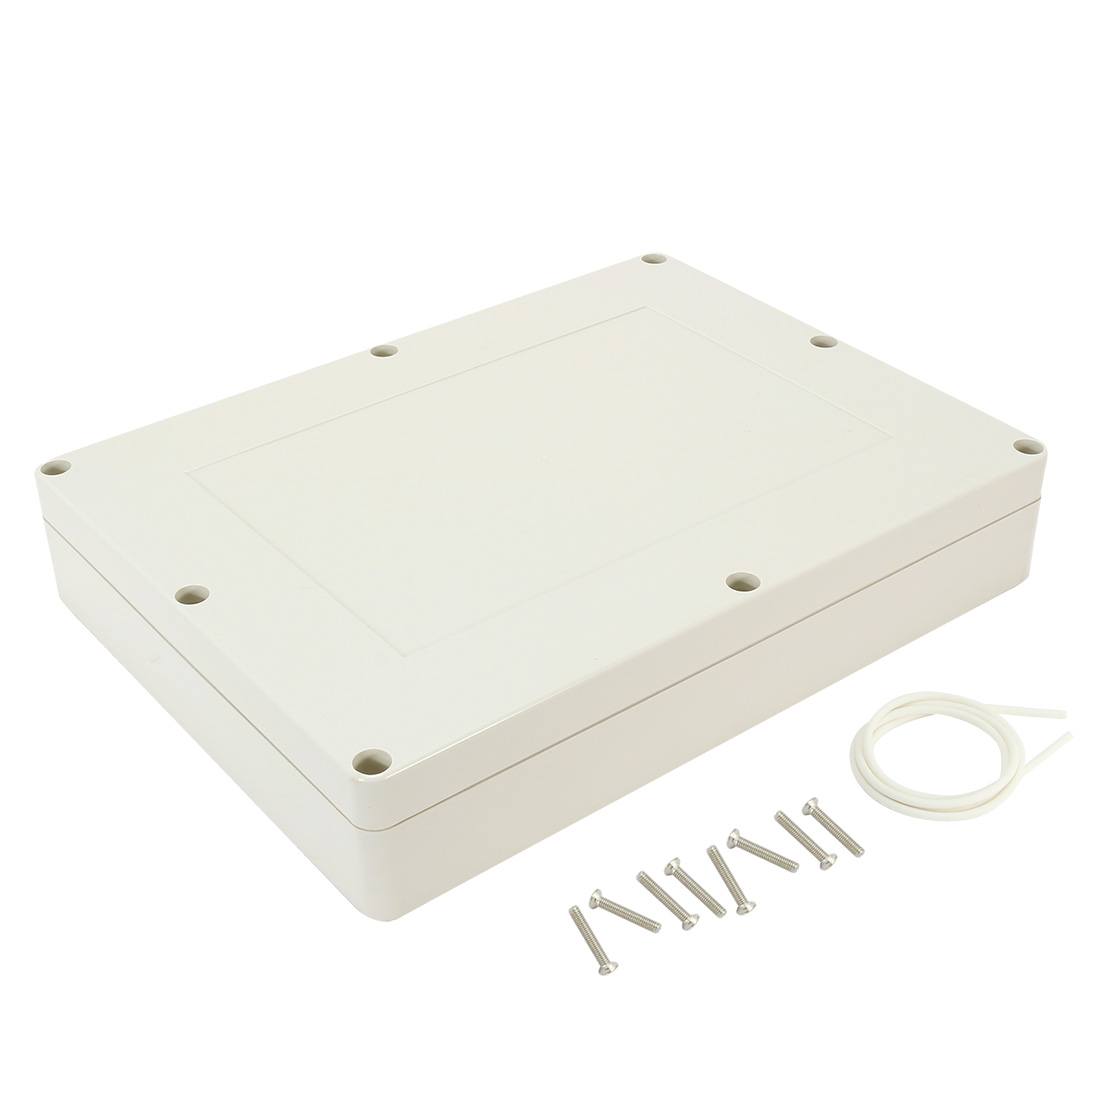 "12.6""x9.5""x2.3""(320mmx240mmx60mm) ABS Junction Box Universal Electric Project Enclosure"